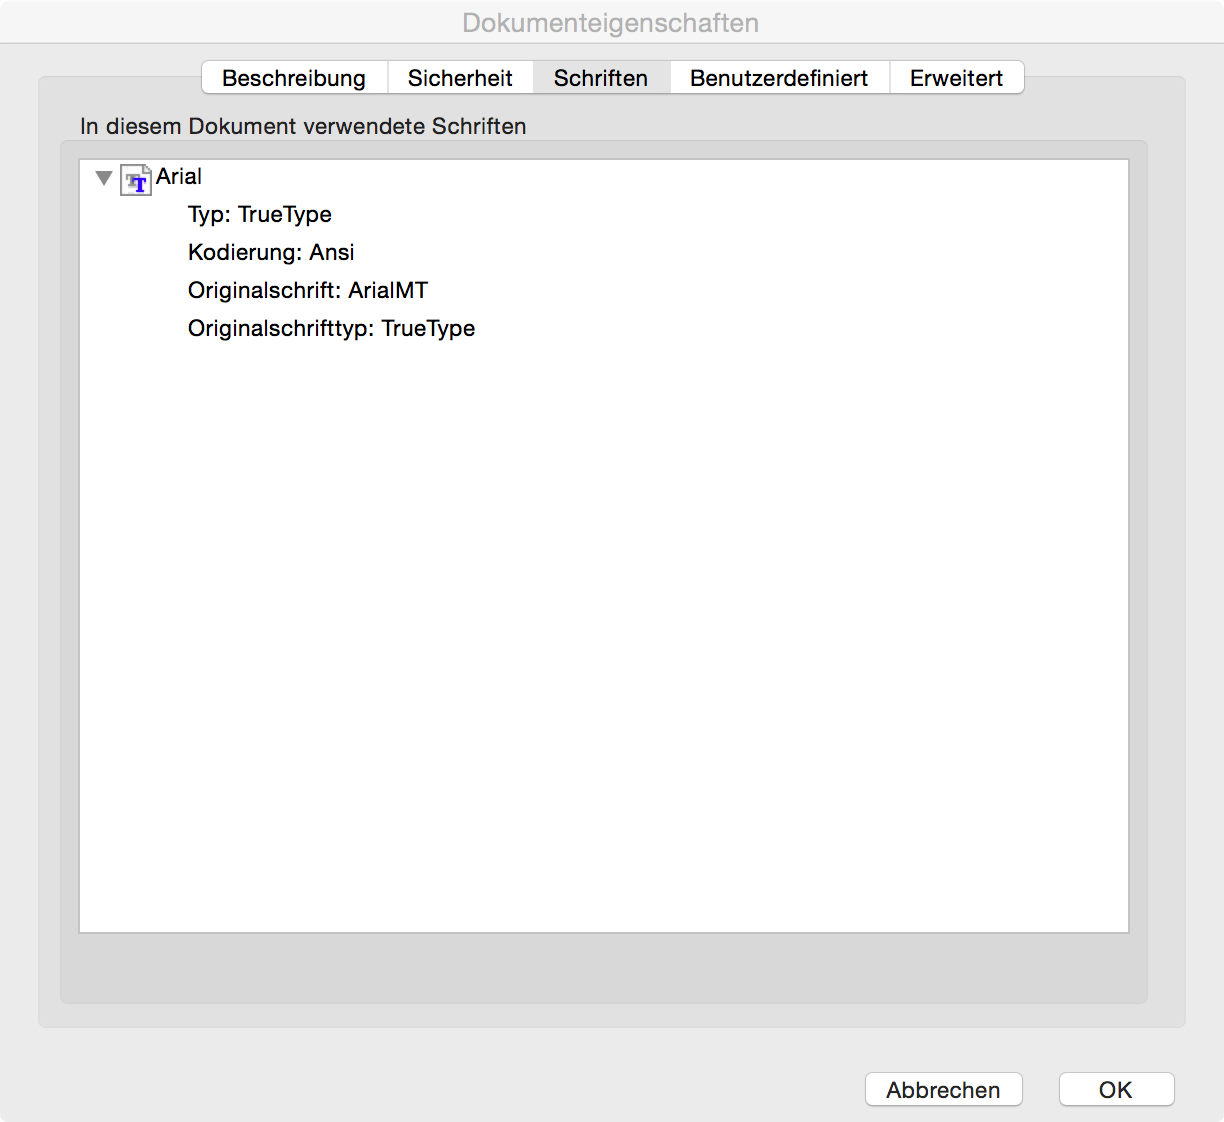 ActualFont in Adobe Reader on OS X